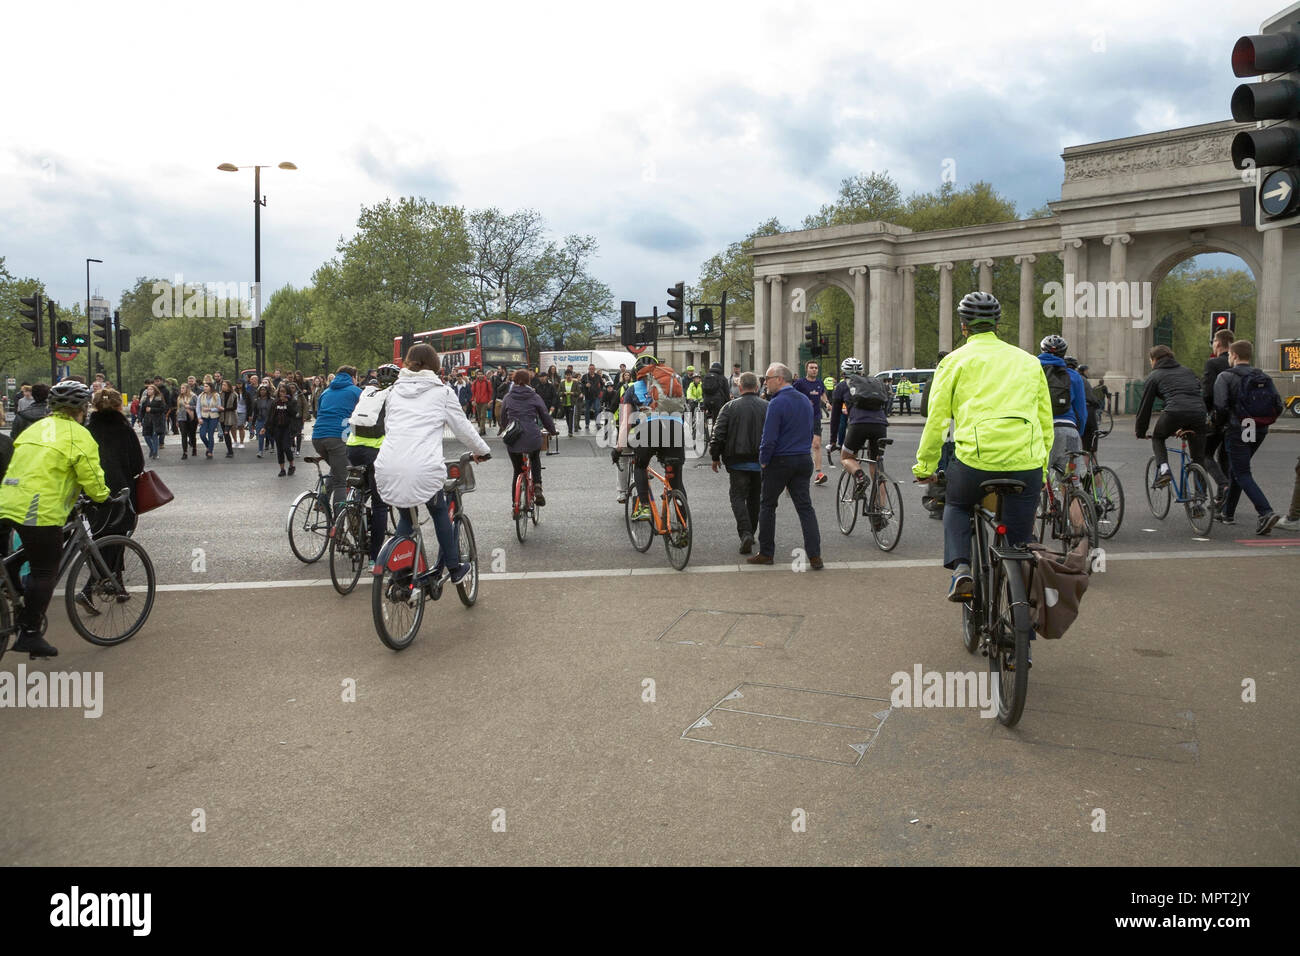 Hyde Park Corner London cyclists and pedestrians crossing a road. Commuting by bike in London. - Stock Image